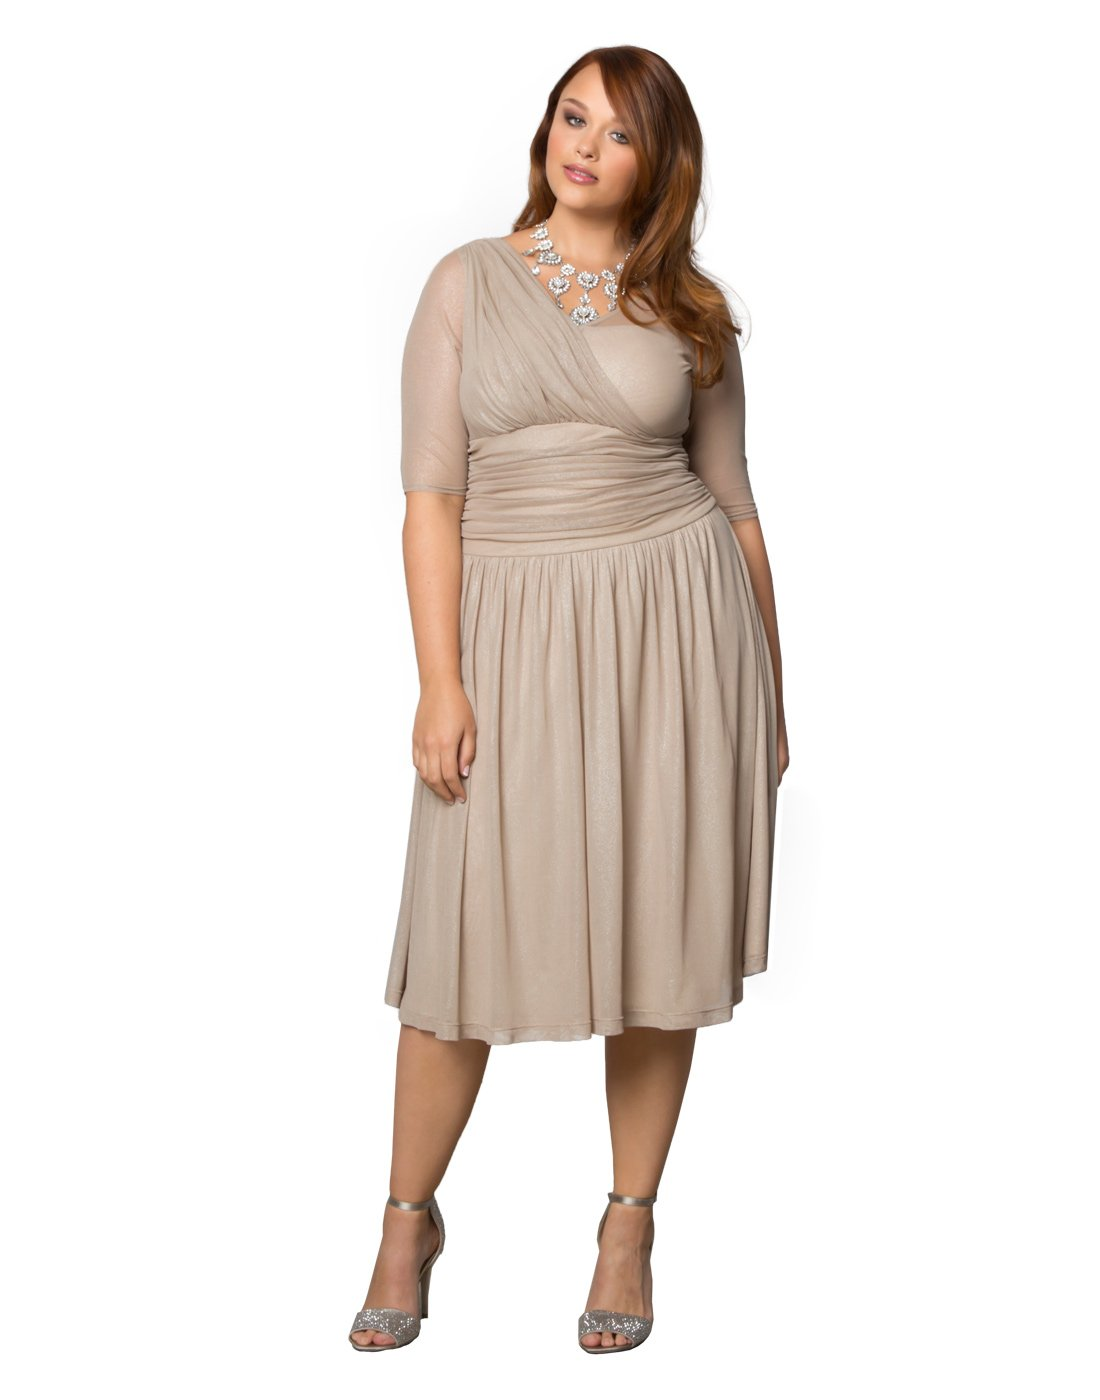 Kiyonna Women's Plus Size Limited Edition Glimmer Cocktail Dress 1X Champagne